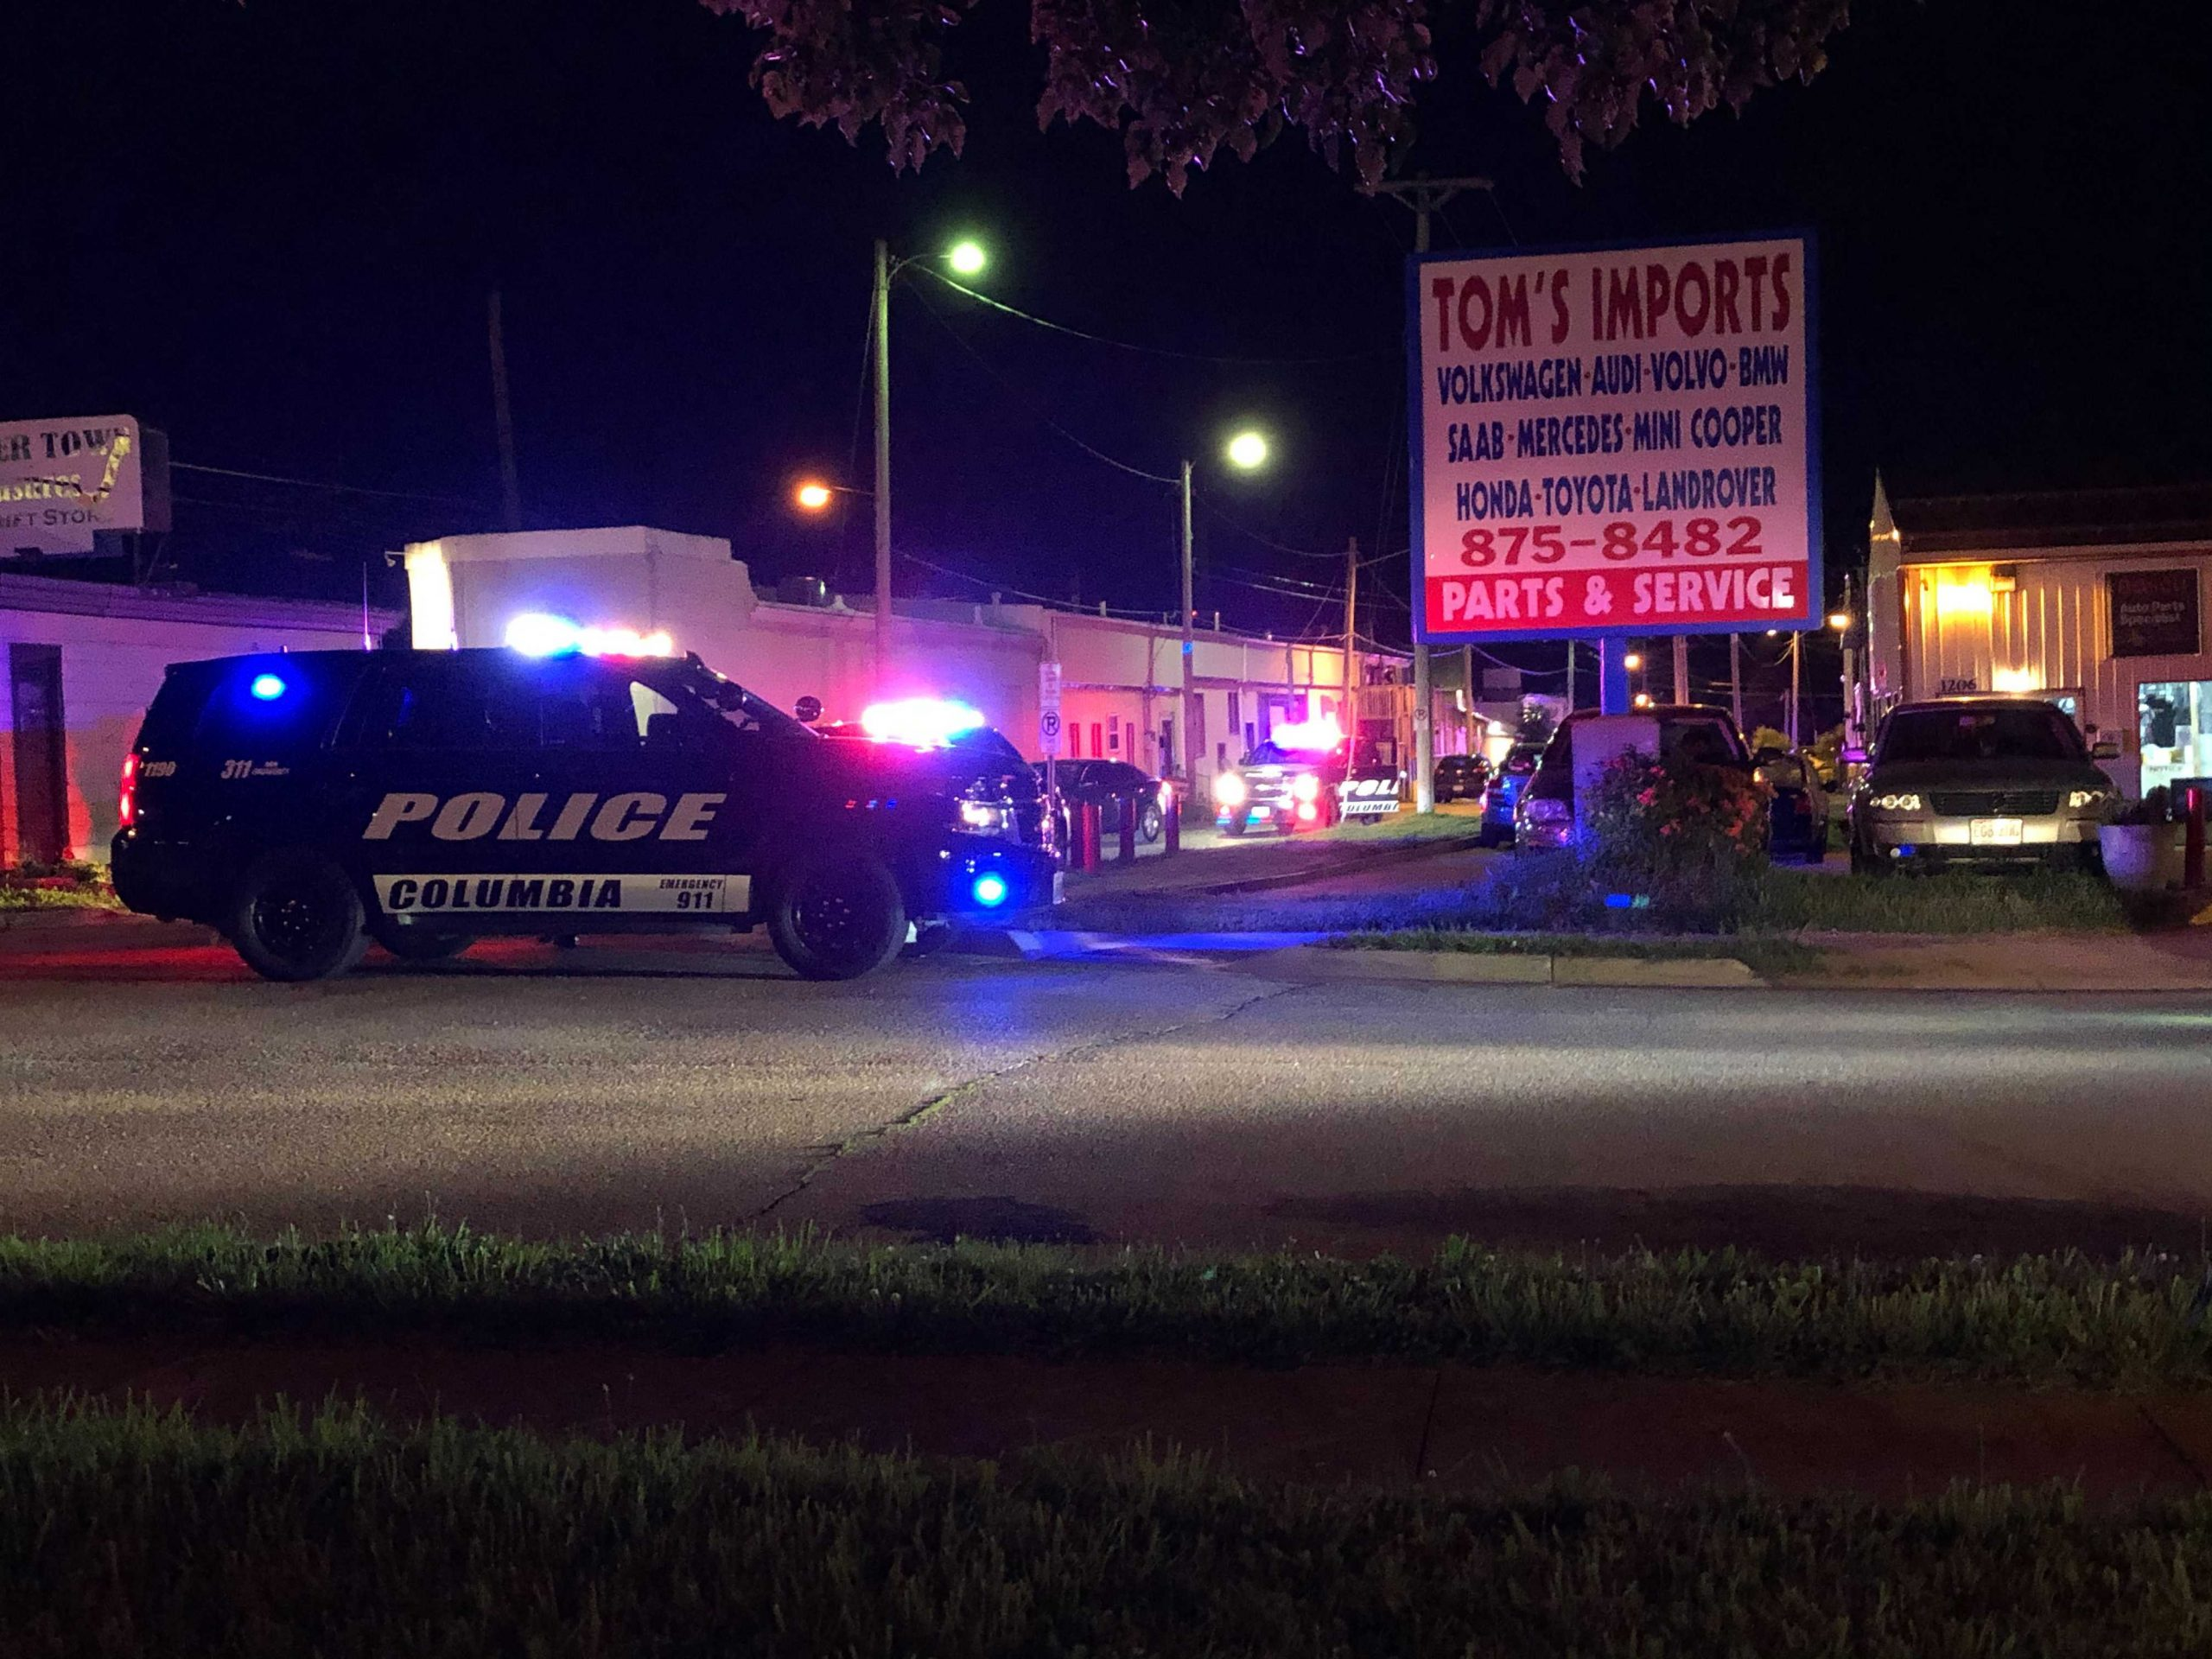 Law enforcement is investigating after shots were fired near Plush Lounge early Saturday morning.